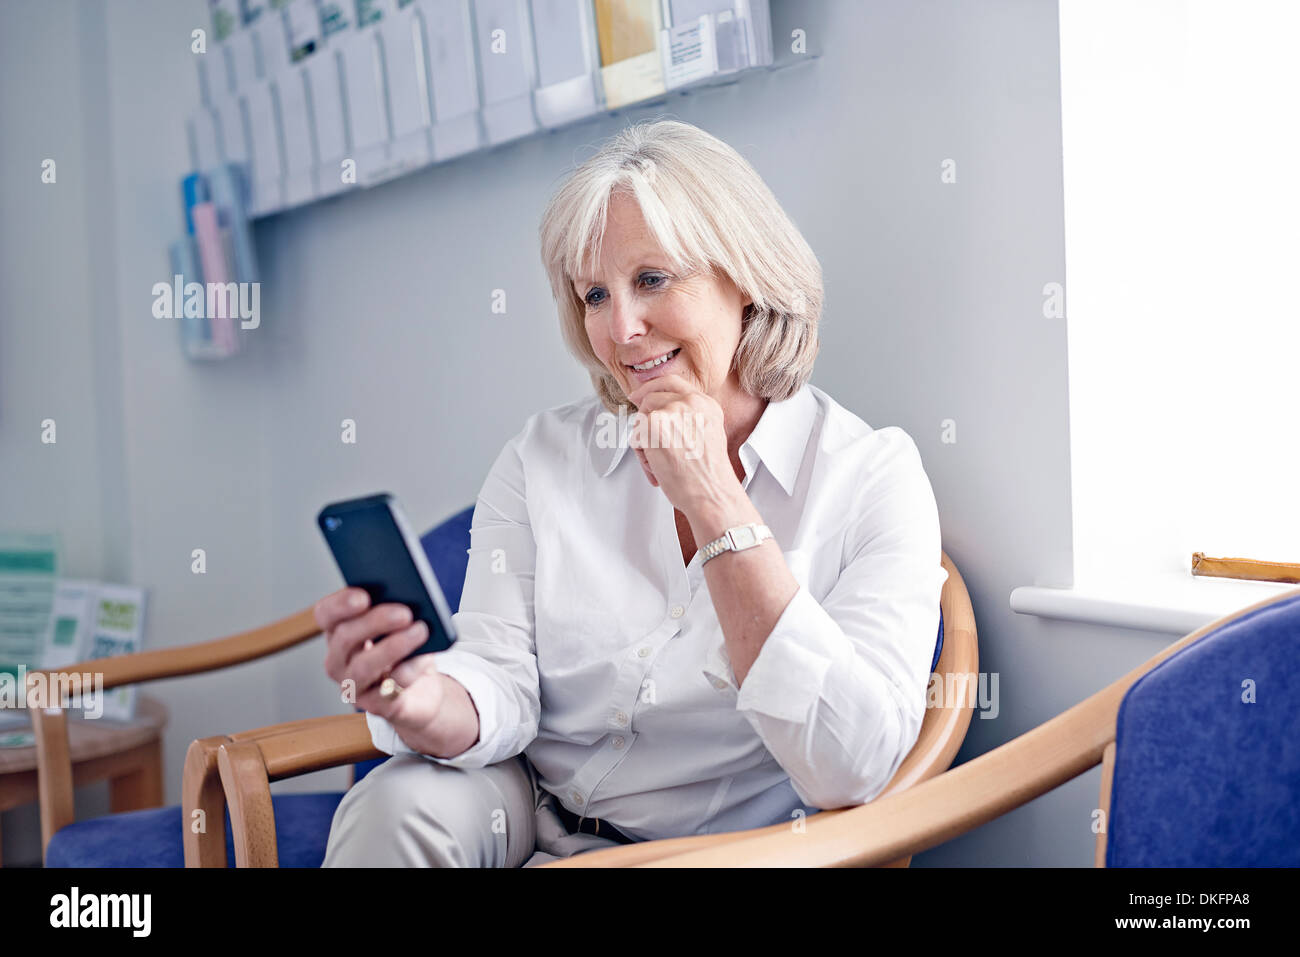 Mature female patient looking at mobile phone in hospital waiting room - Stock Image